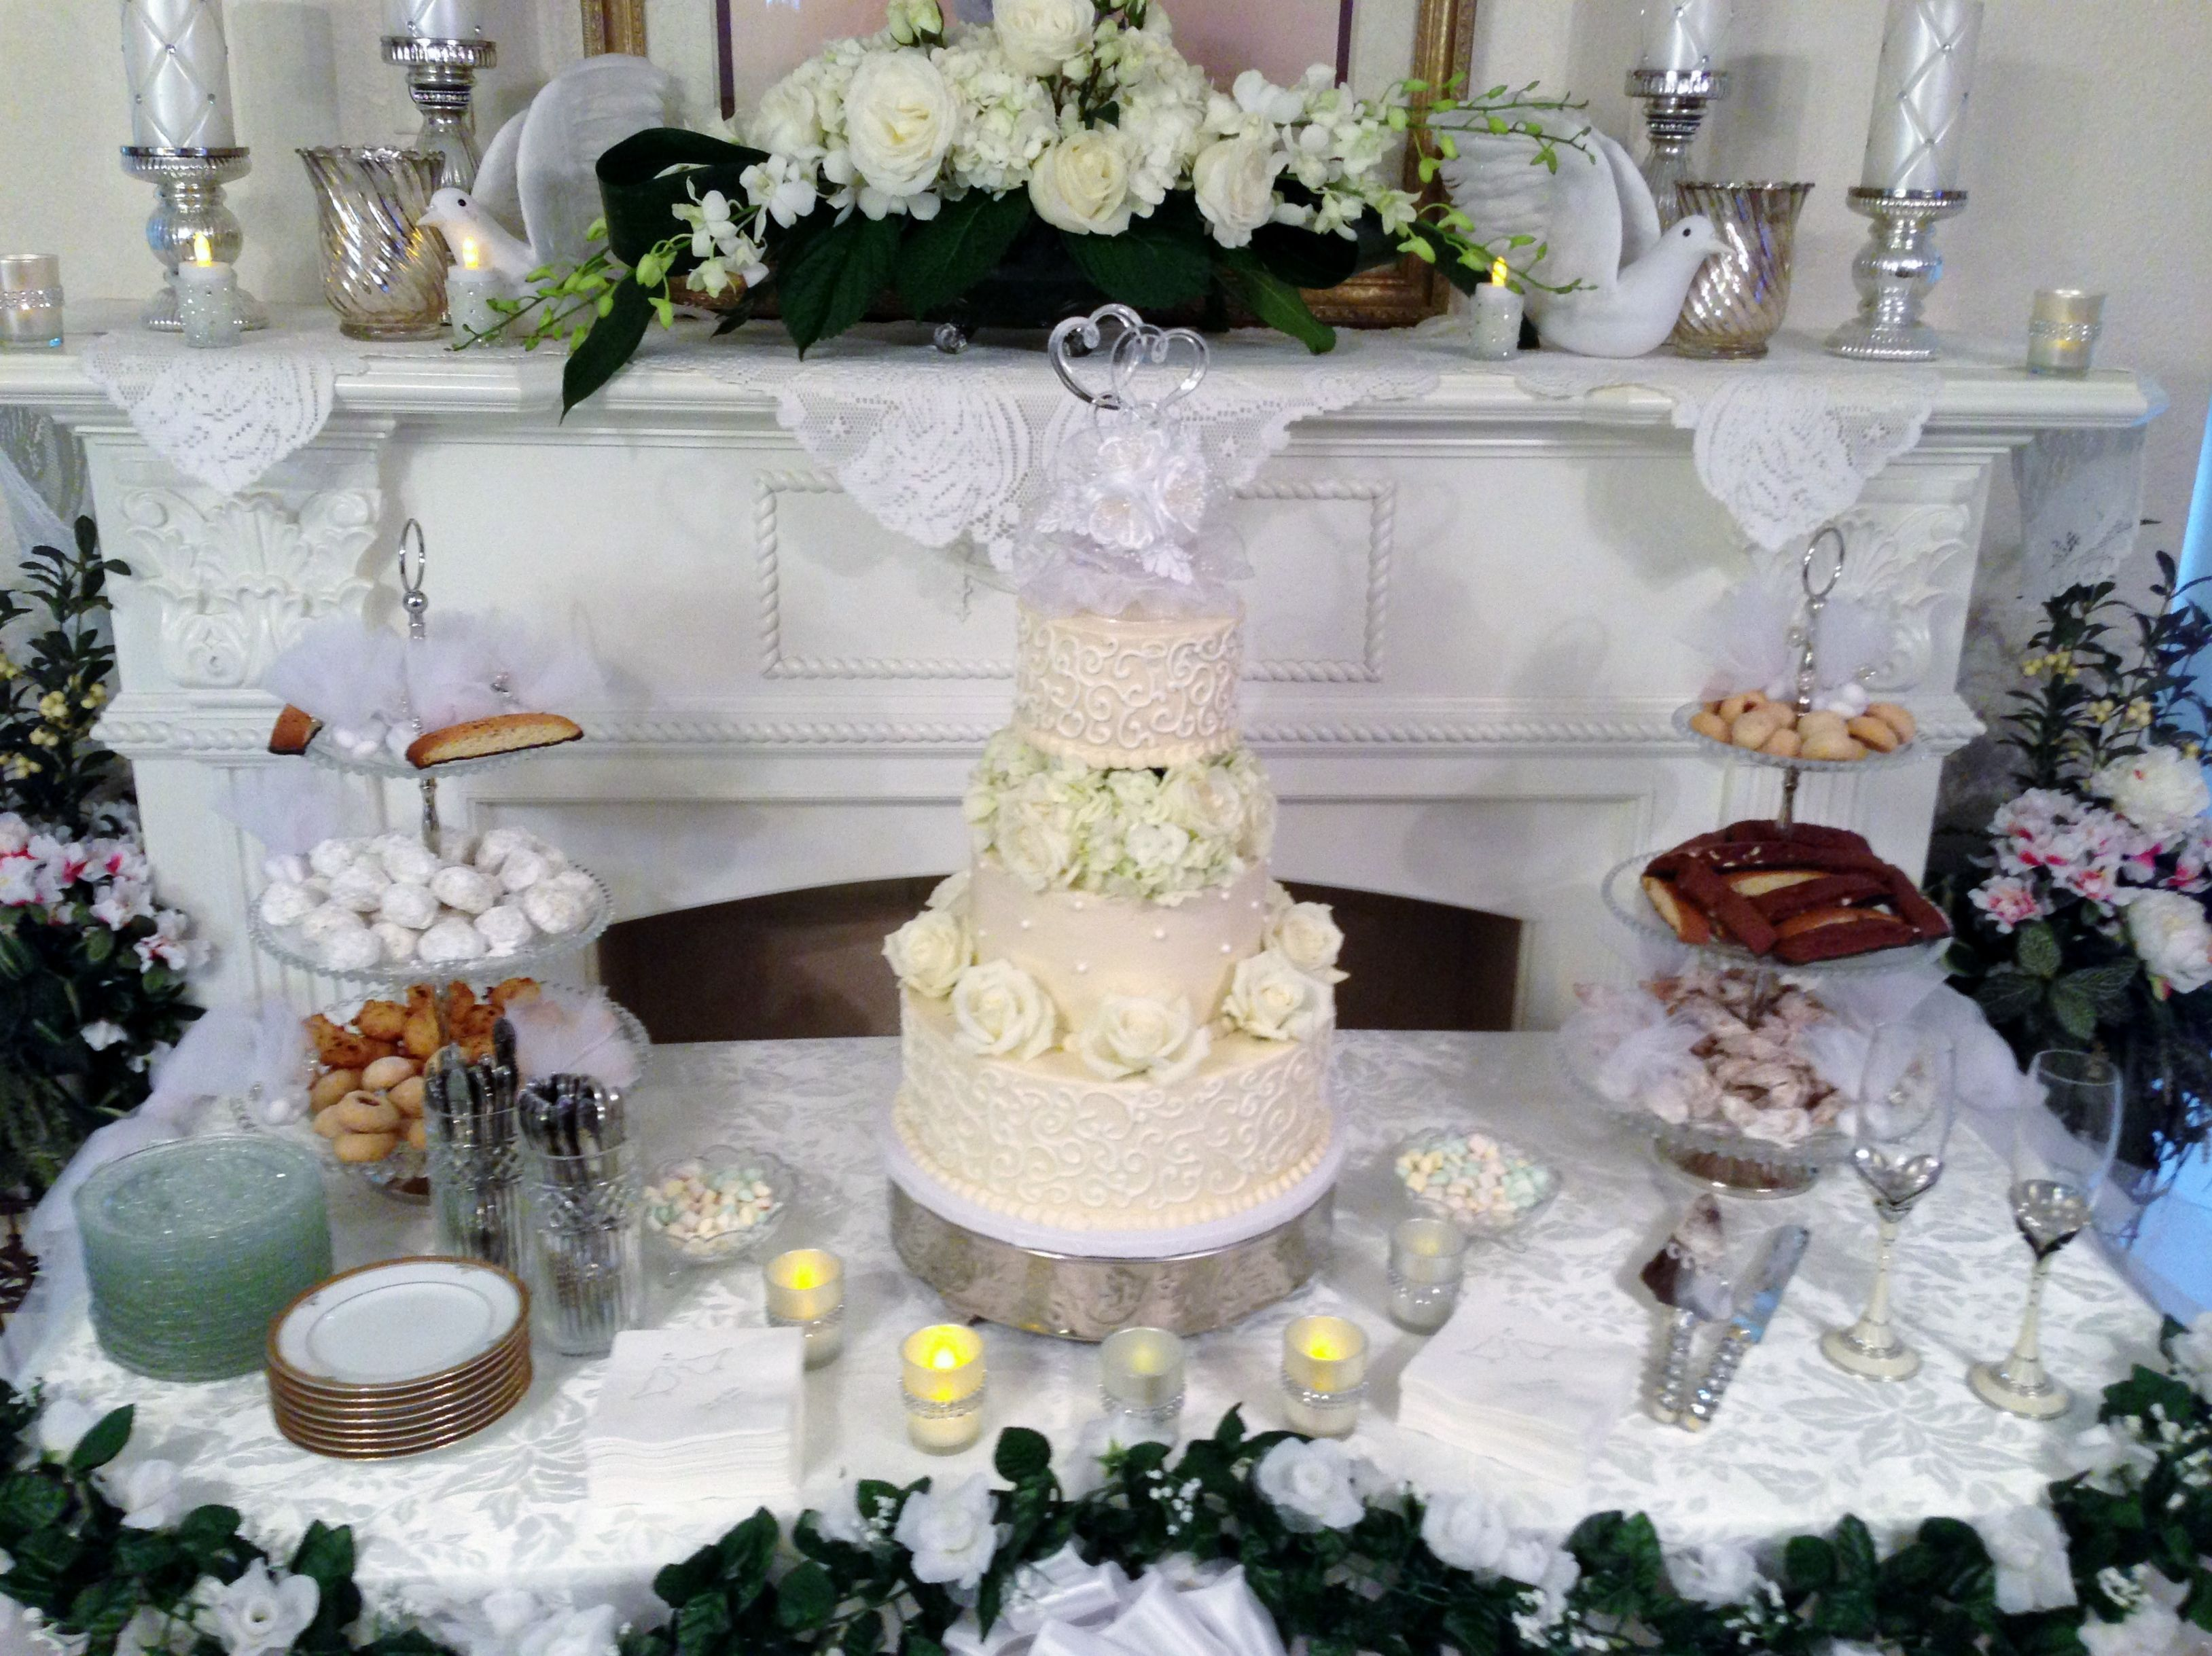 Small Wedding at Home. Chopin Mon Ami Catering & Cakes Galveston TX ...